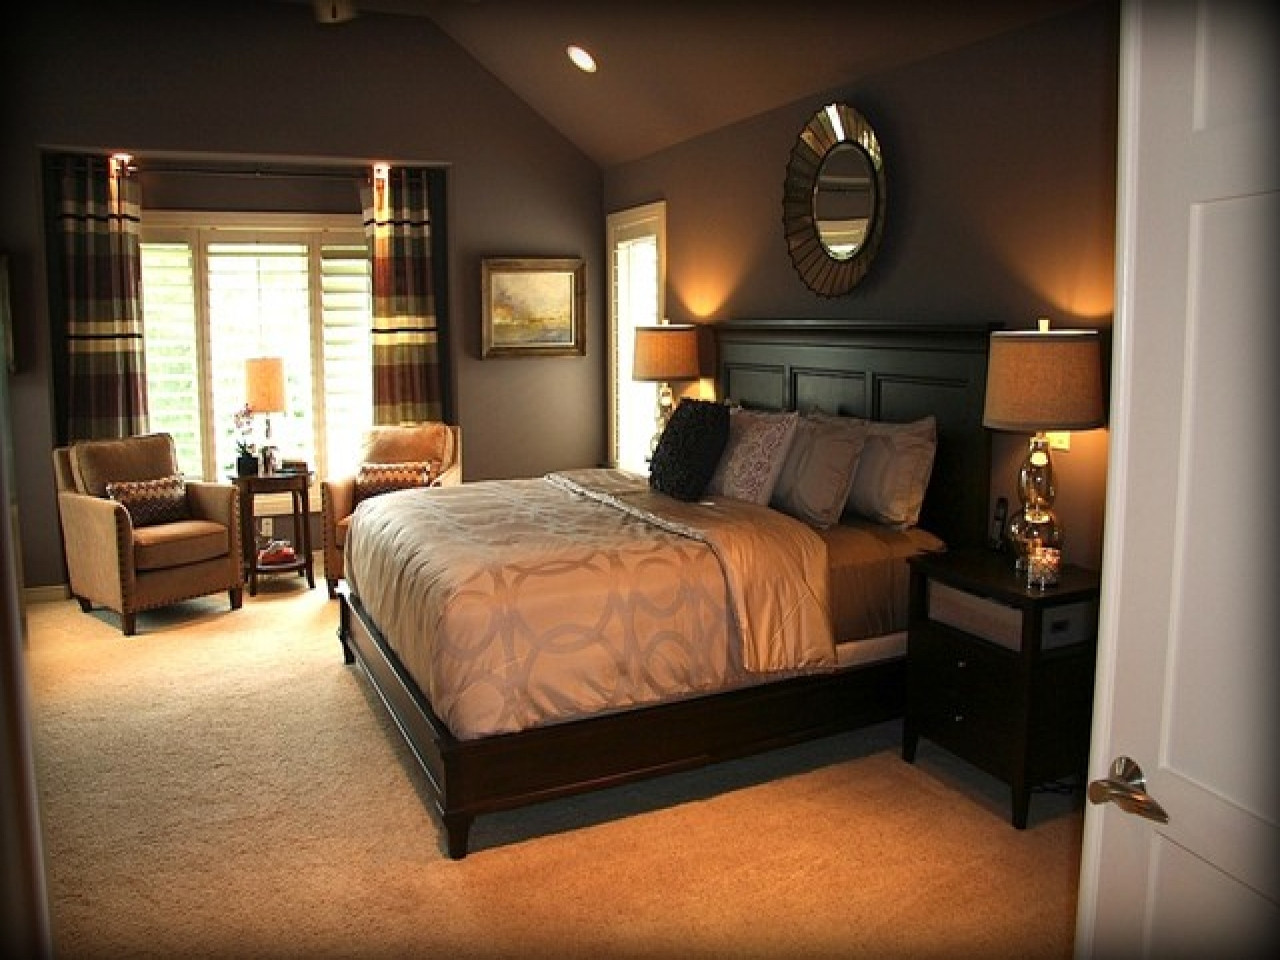 Best ideas about Master Bedroom Suite . Save or Pin Master suite bedroom ideas luxury master bedroom designs Now.